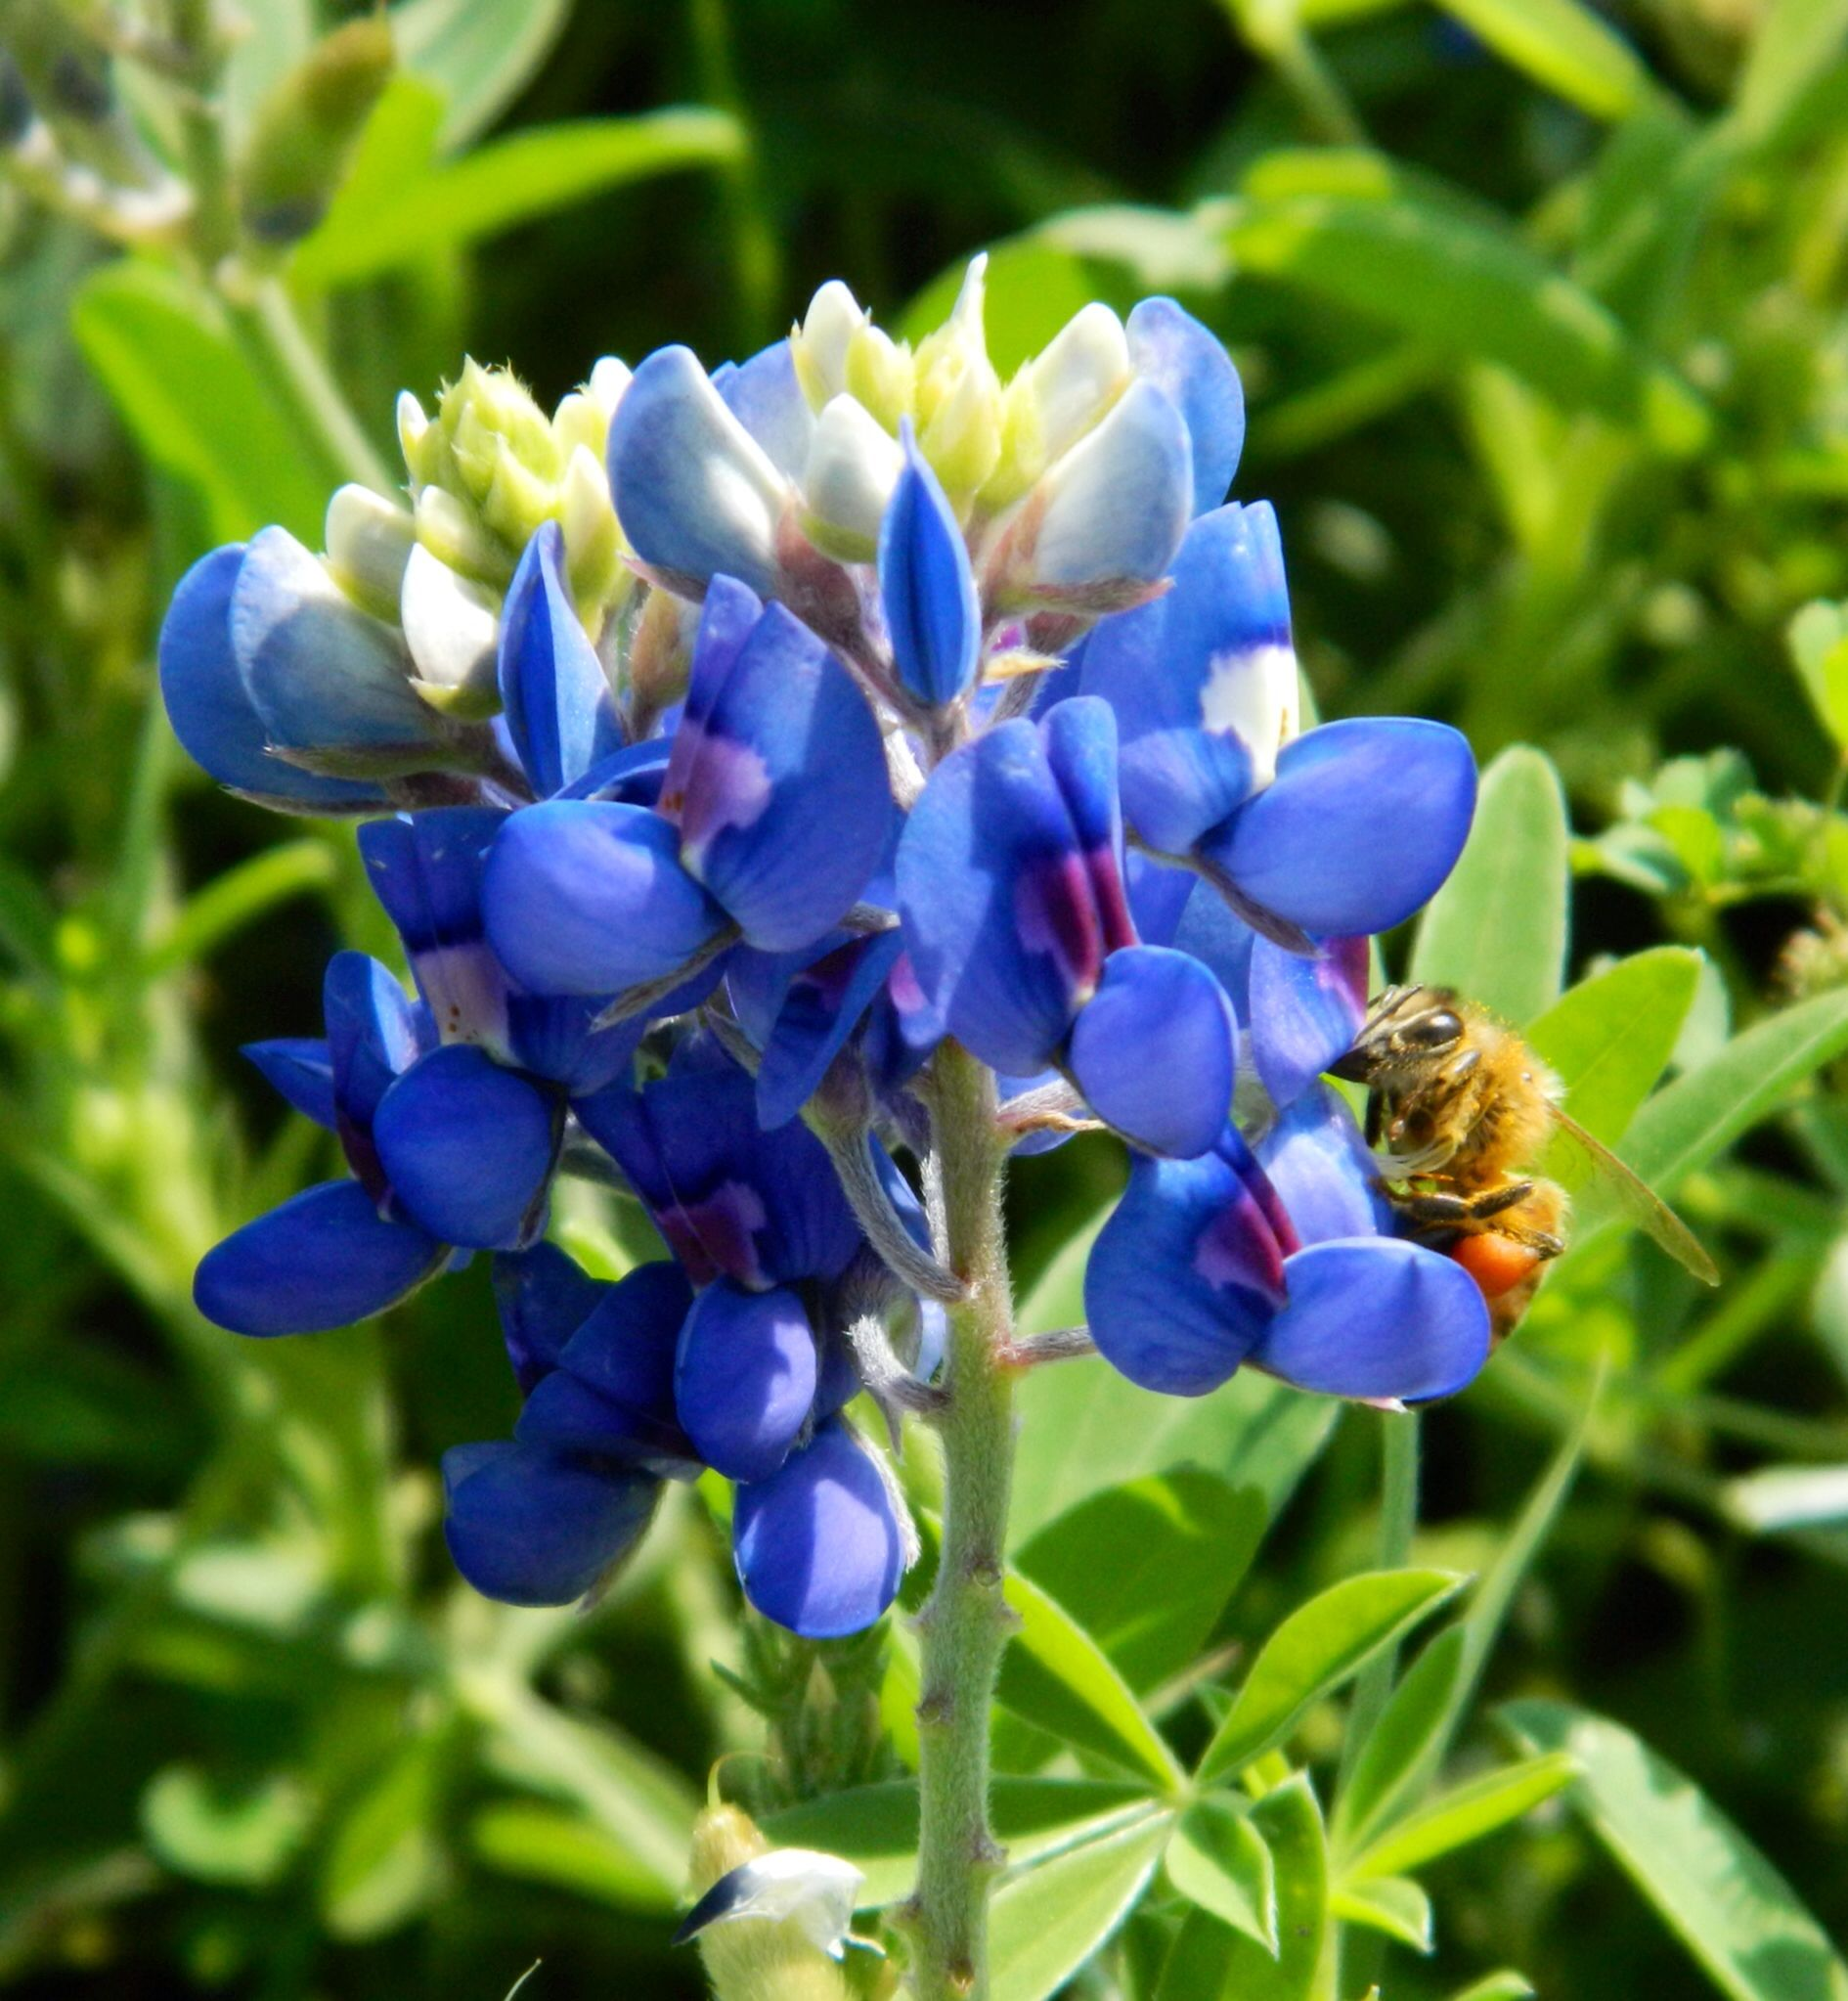 Bees love bluebonnets too!   My favorite  time of the year in Texas will always be the wildflower season.